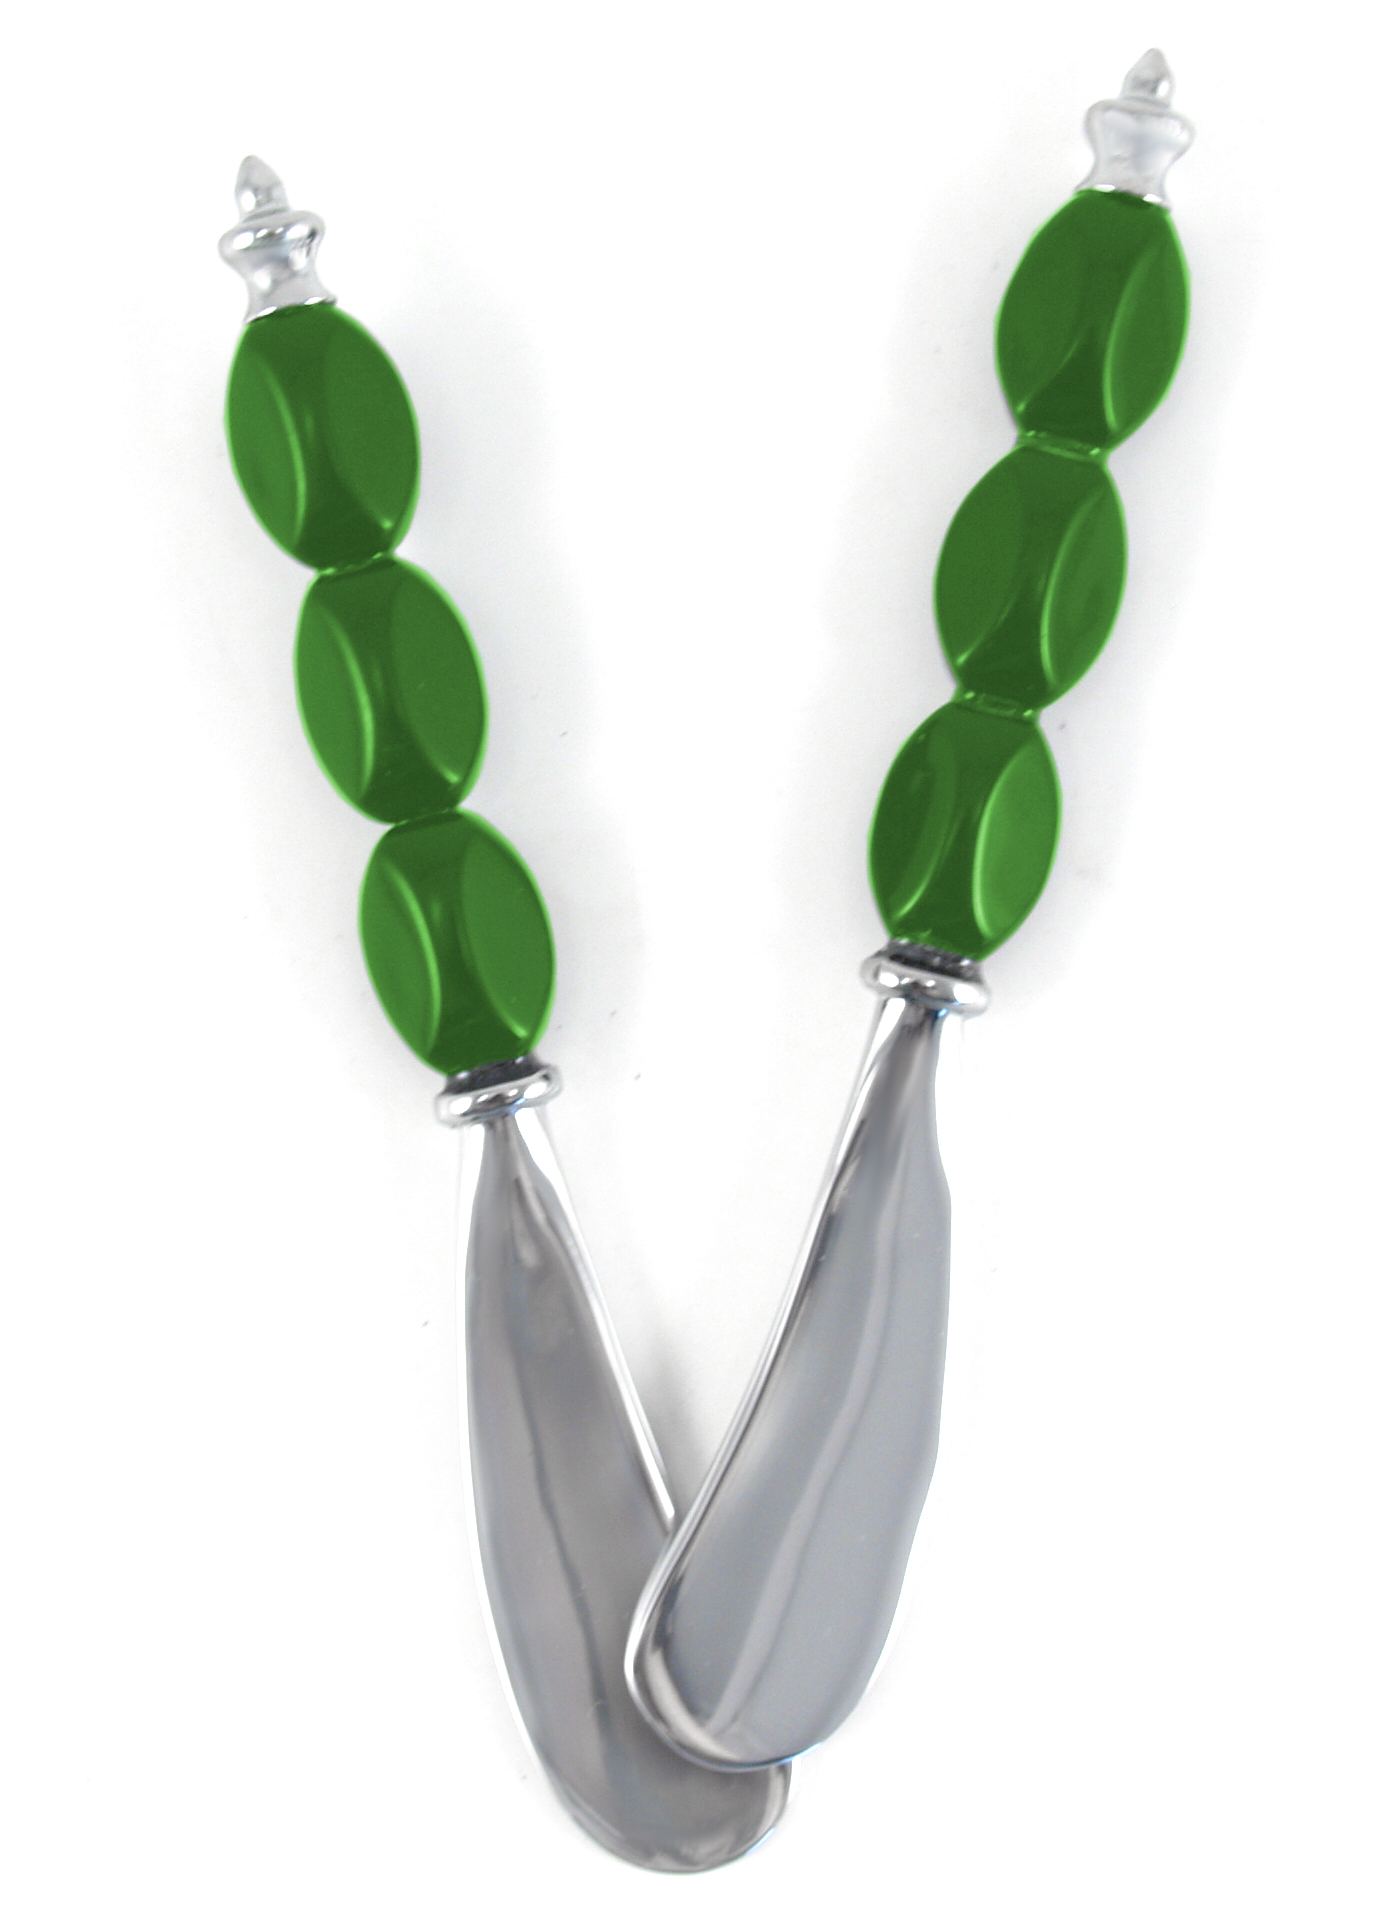 Polished Stainless Steel Spreader with Green Handle, Set of 2